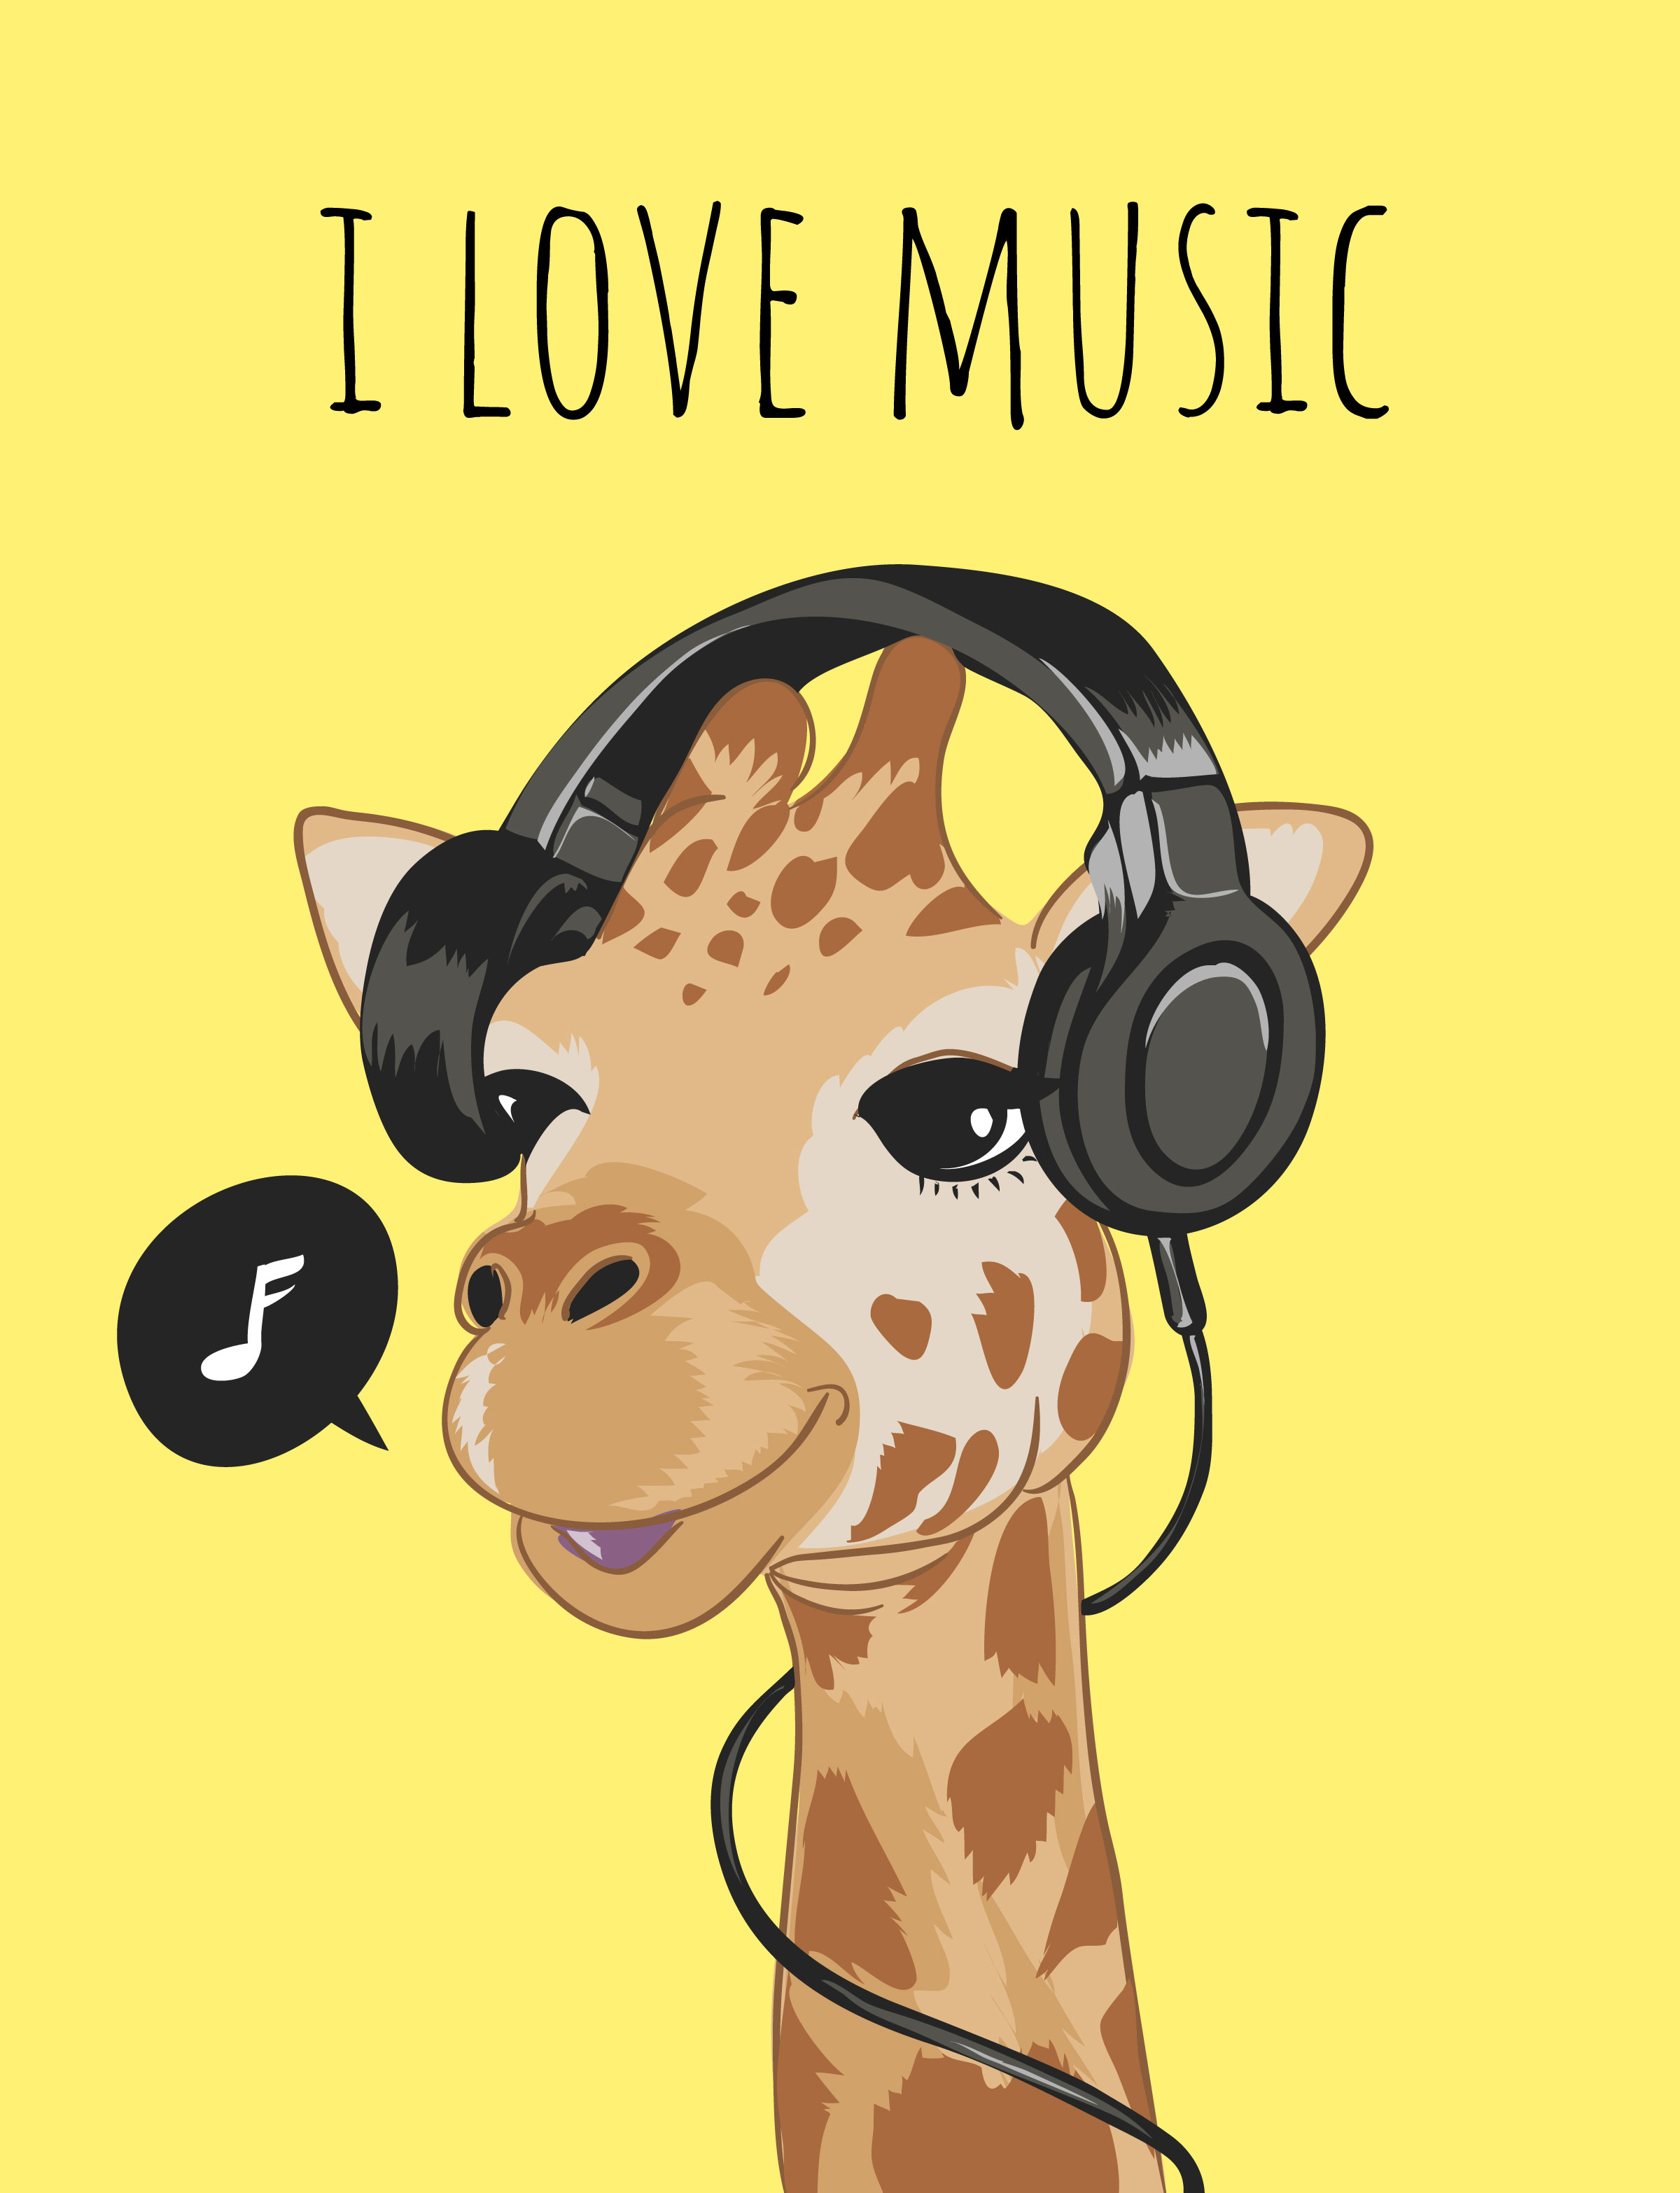 cute giraffe on headphone cartoon illustration.